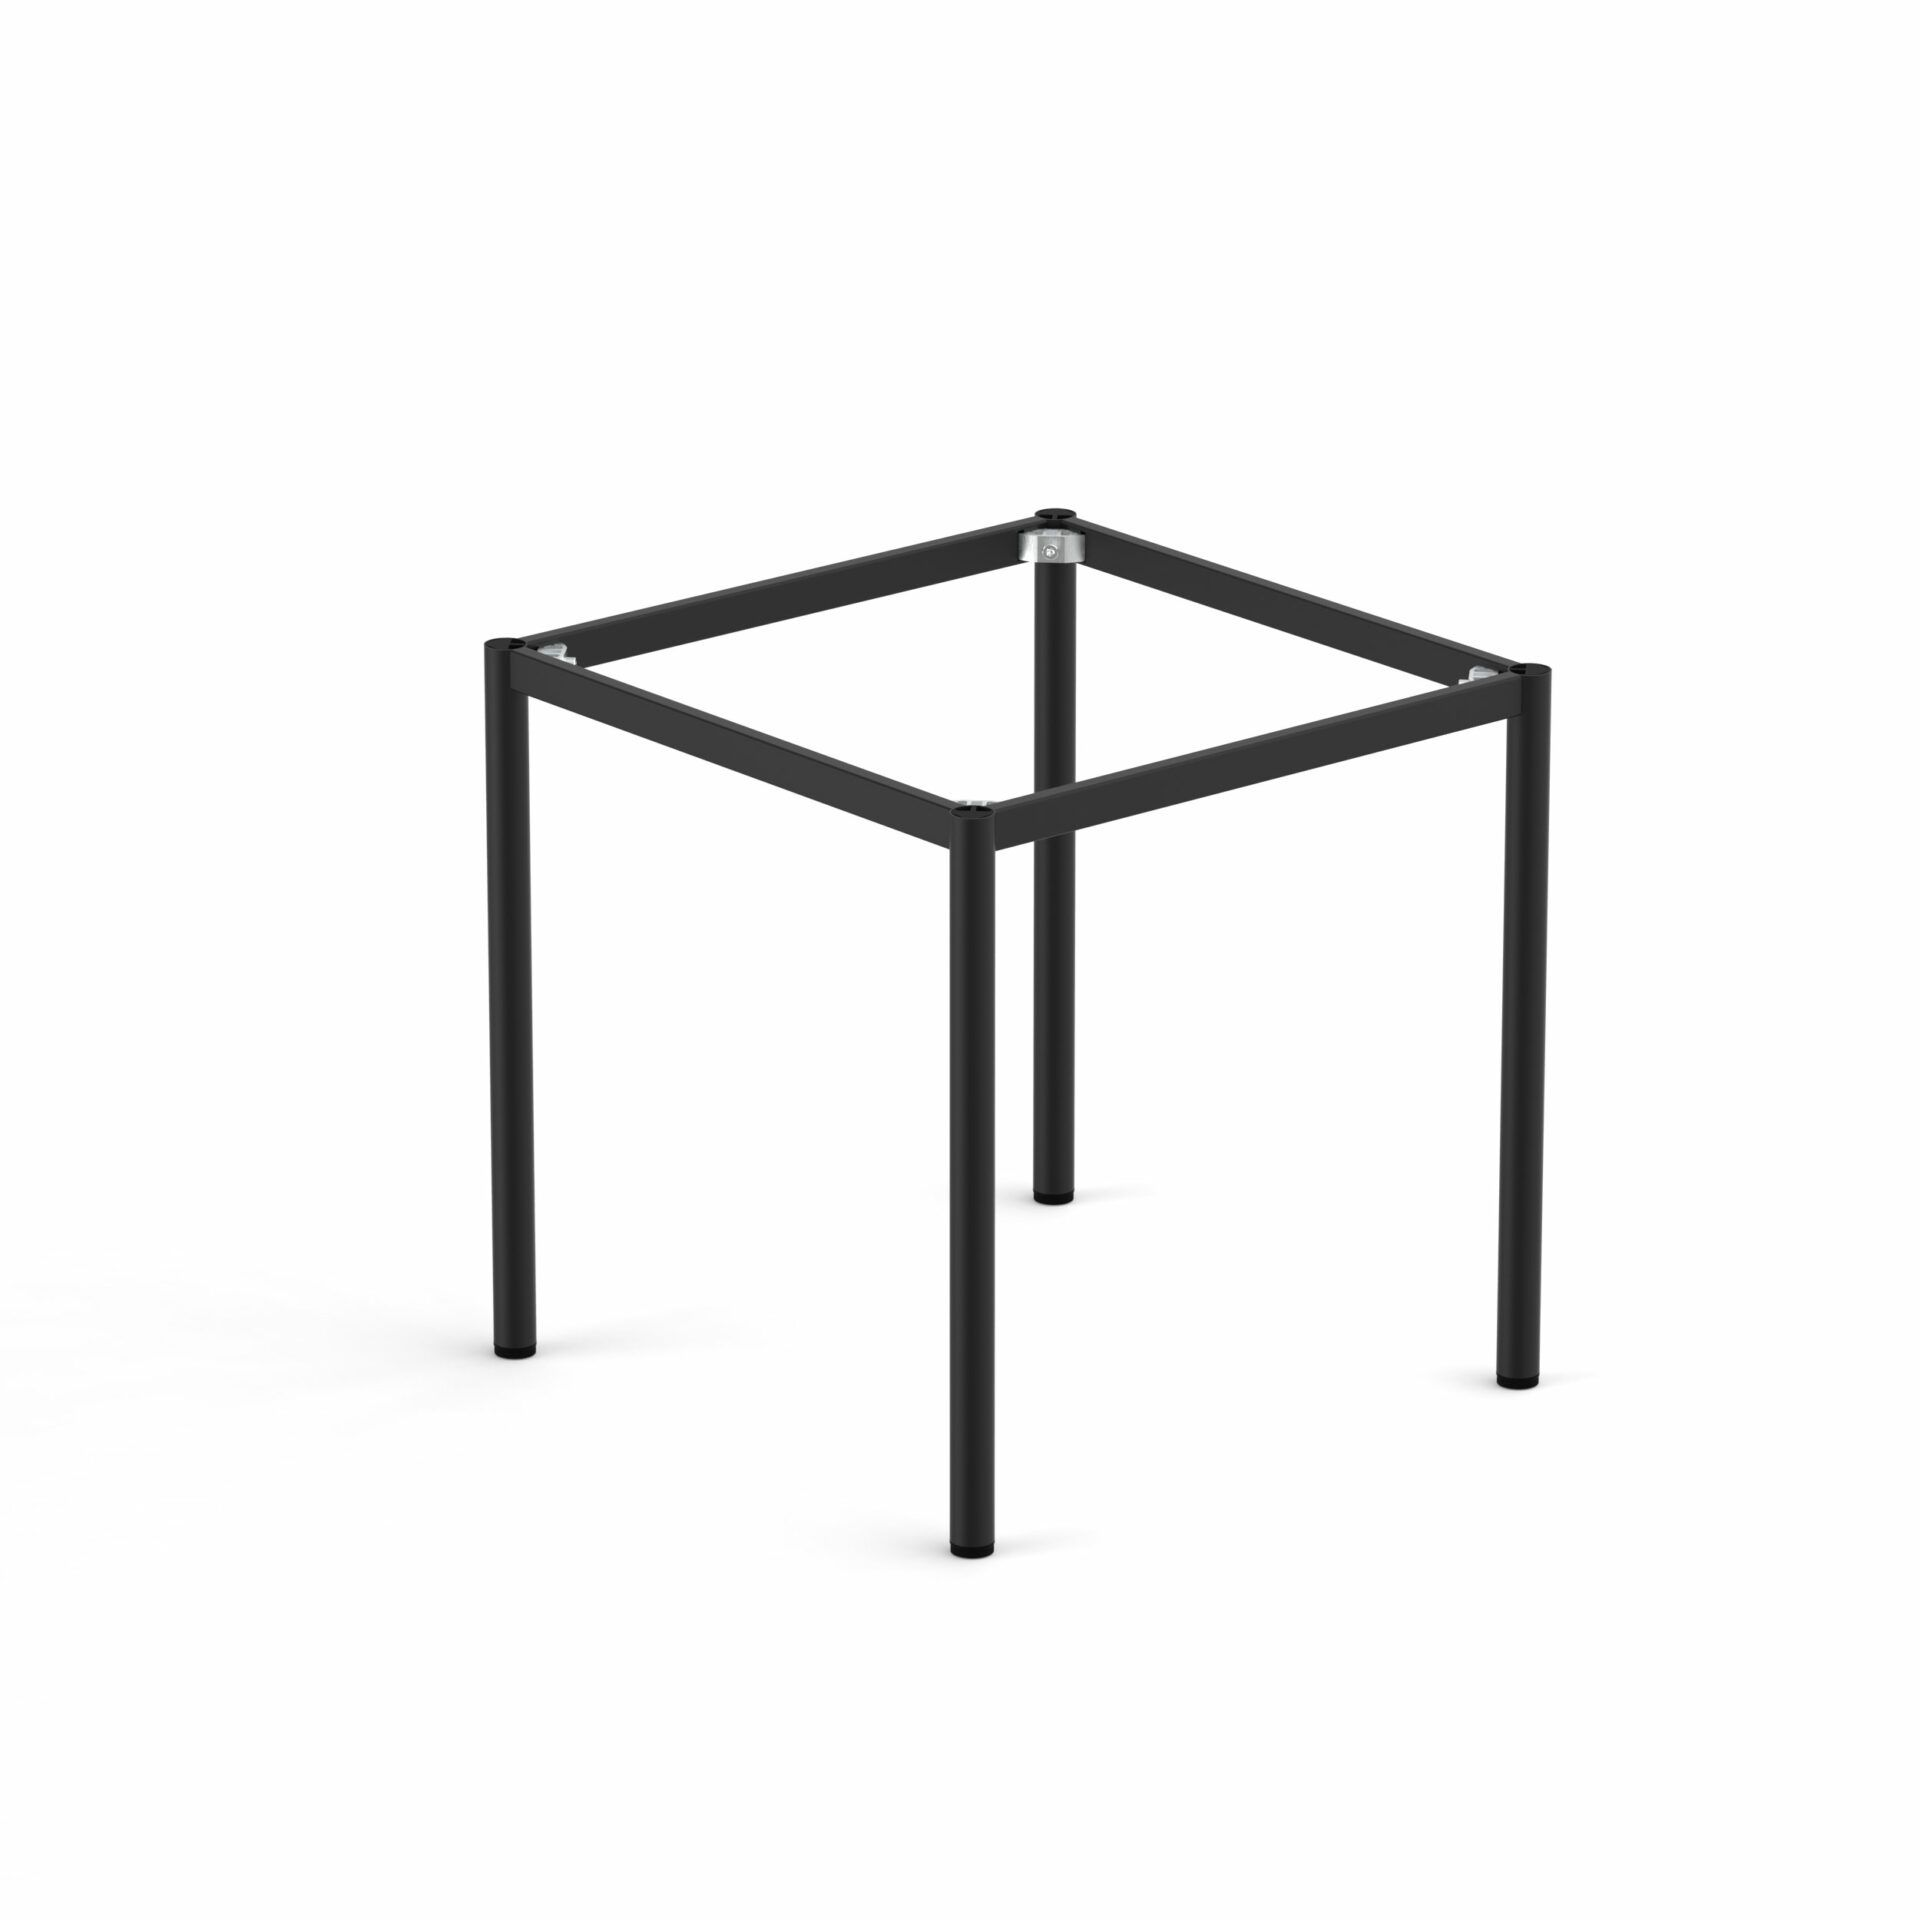 Spire Square leg Table Height Frame 990 x 740 x 720H